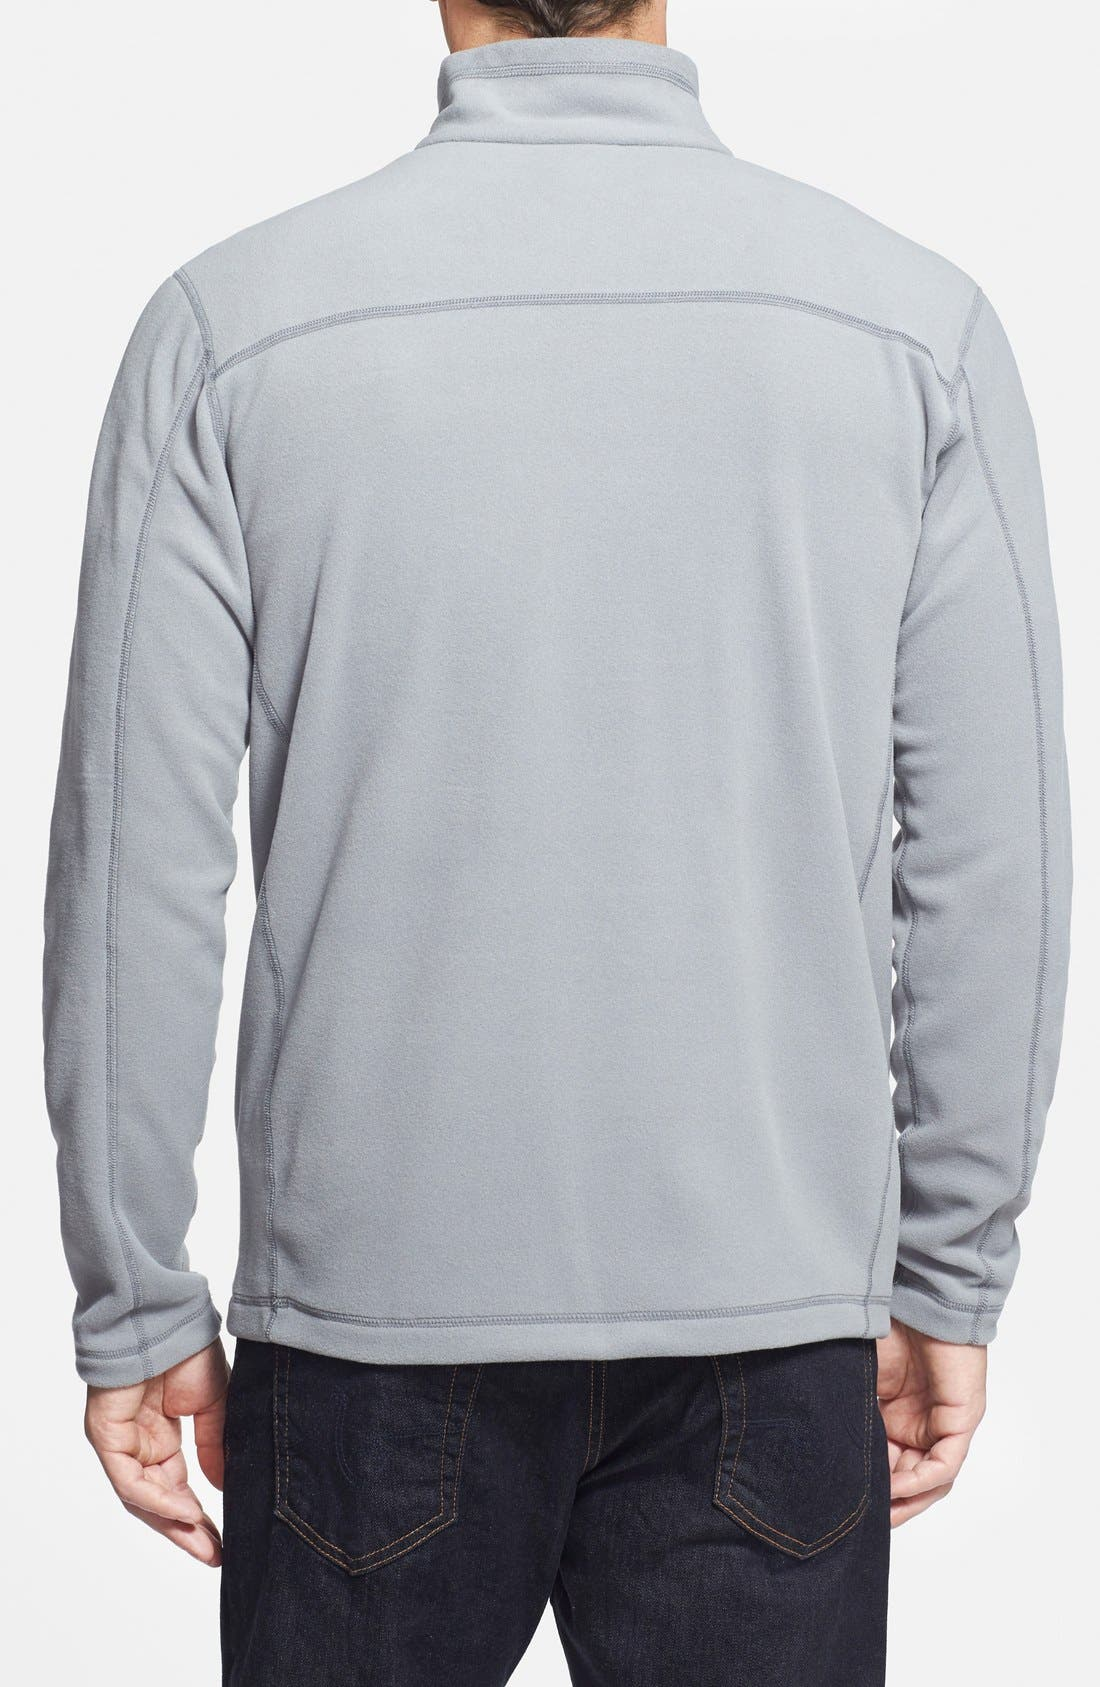 'Micro D' Quarter Zip Front Pullover,                             Alternate thumbnail 2, color,                             Feather Grey